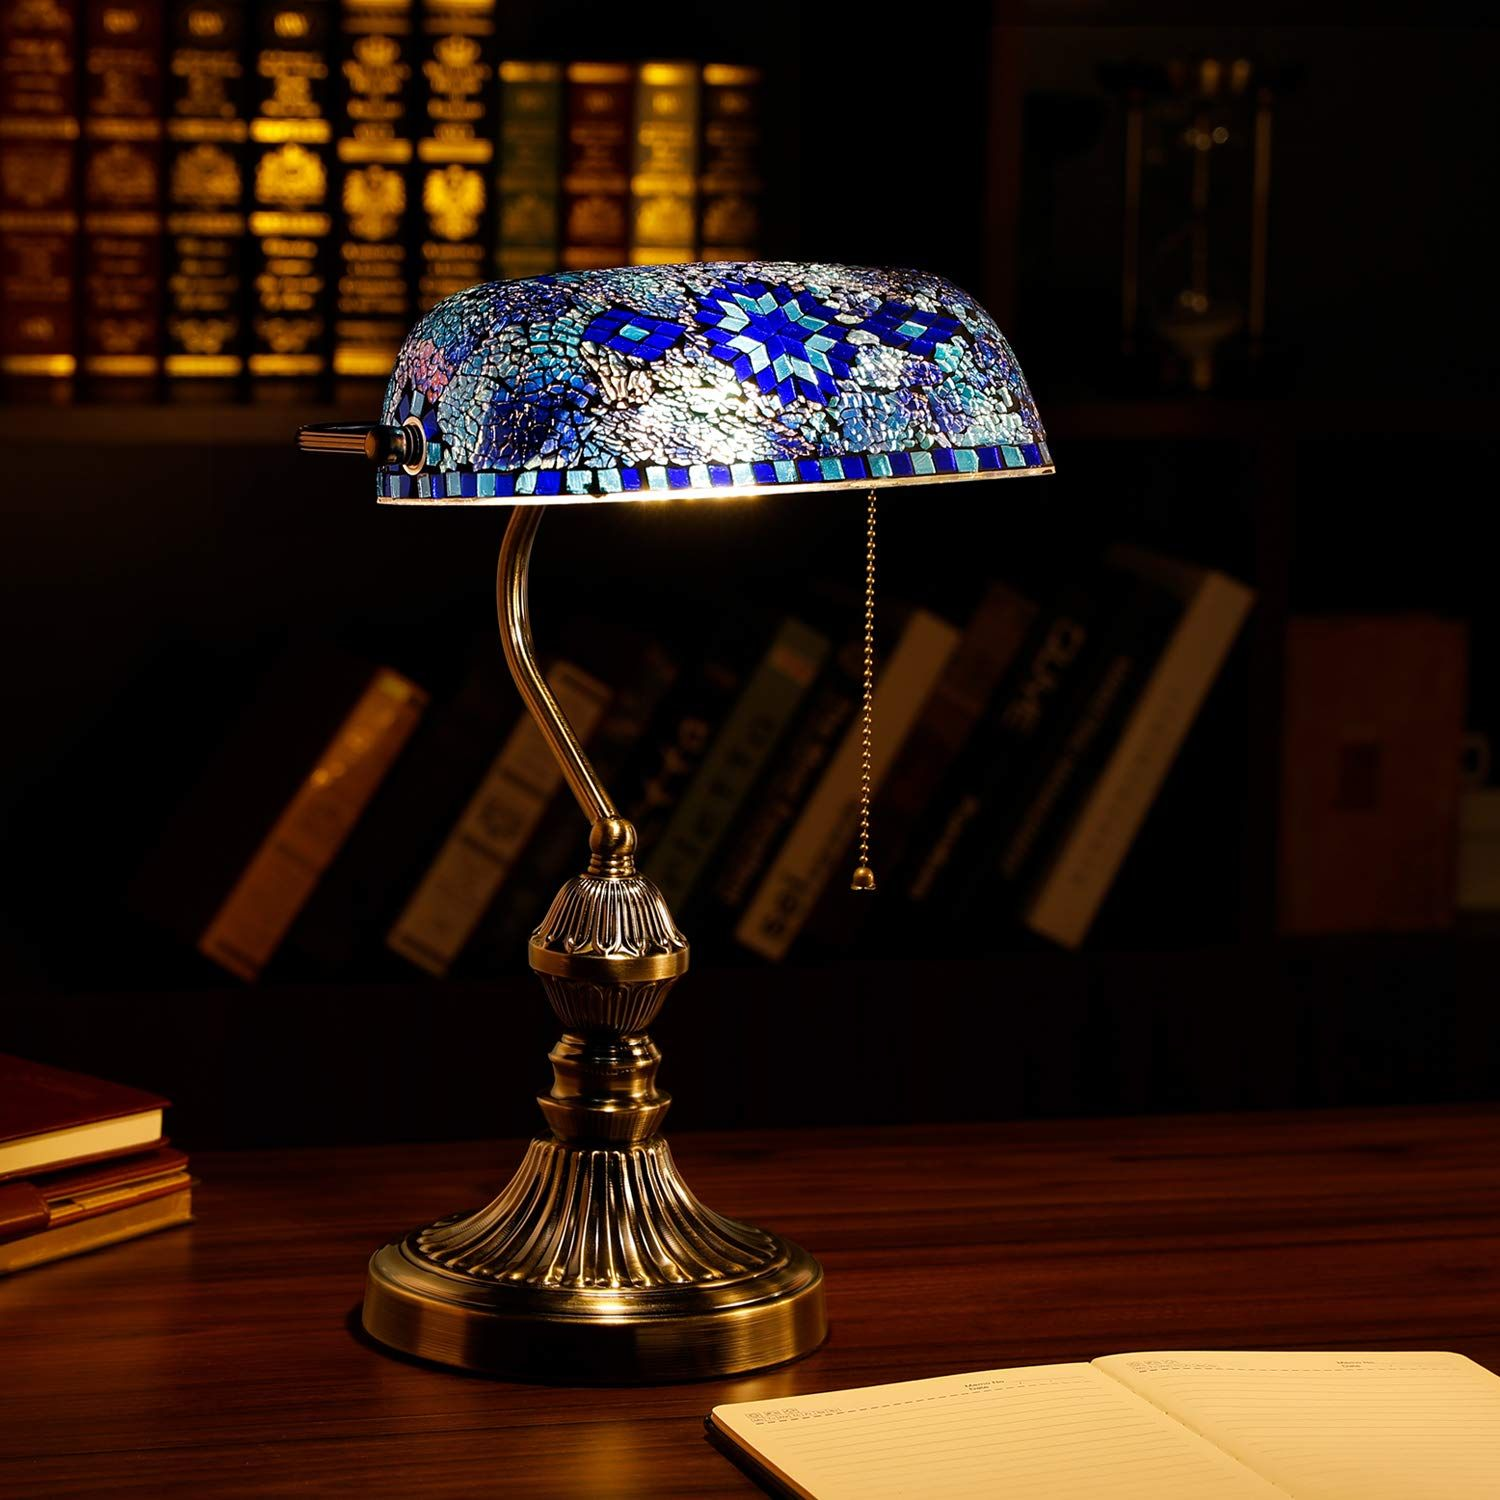 Marrakech Mosaic Lamp In 2020 Glass Desk Lamps Mosaic Lamp Vintage Table Lamp